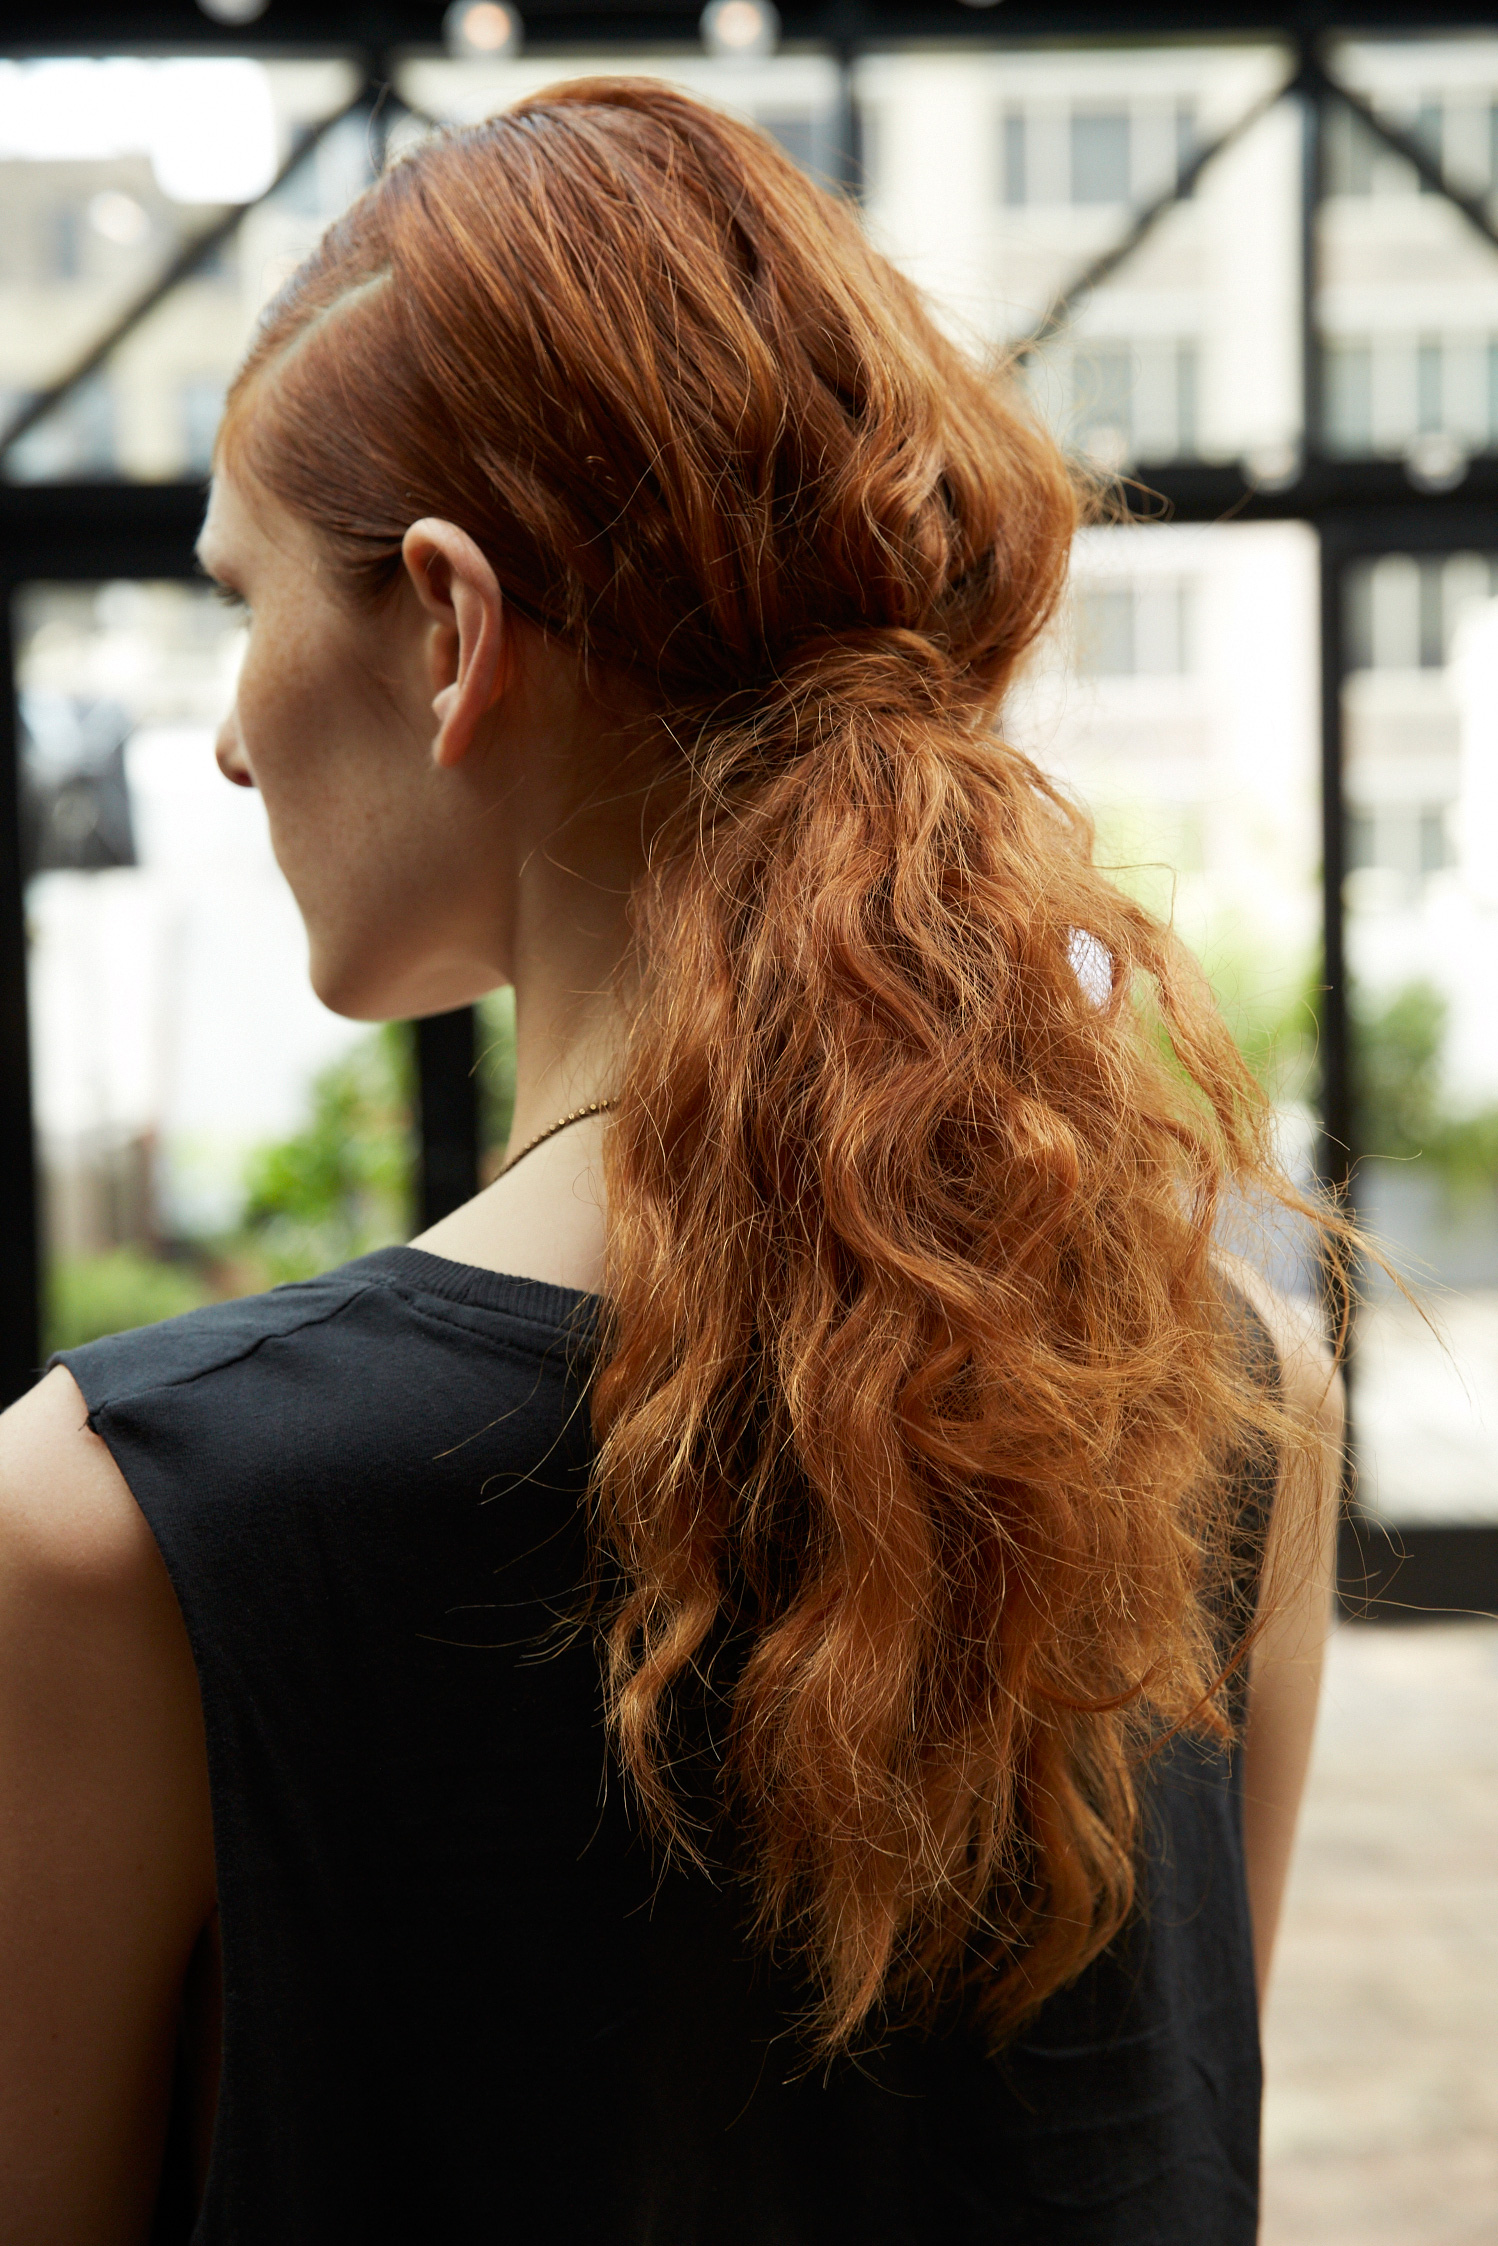 Curly ponytails